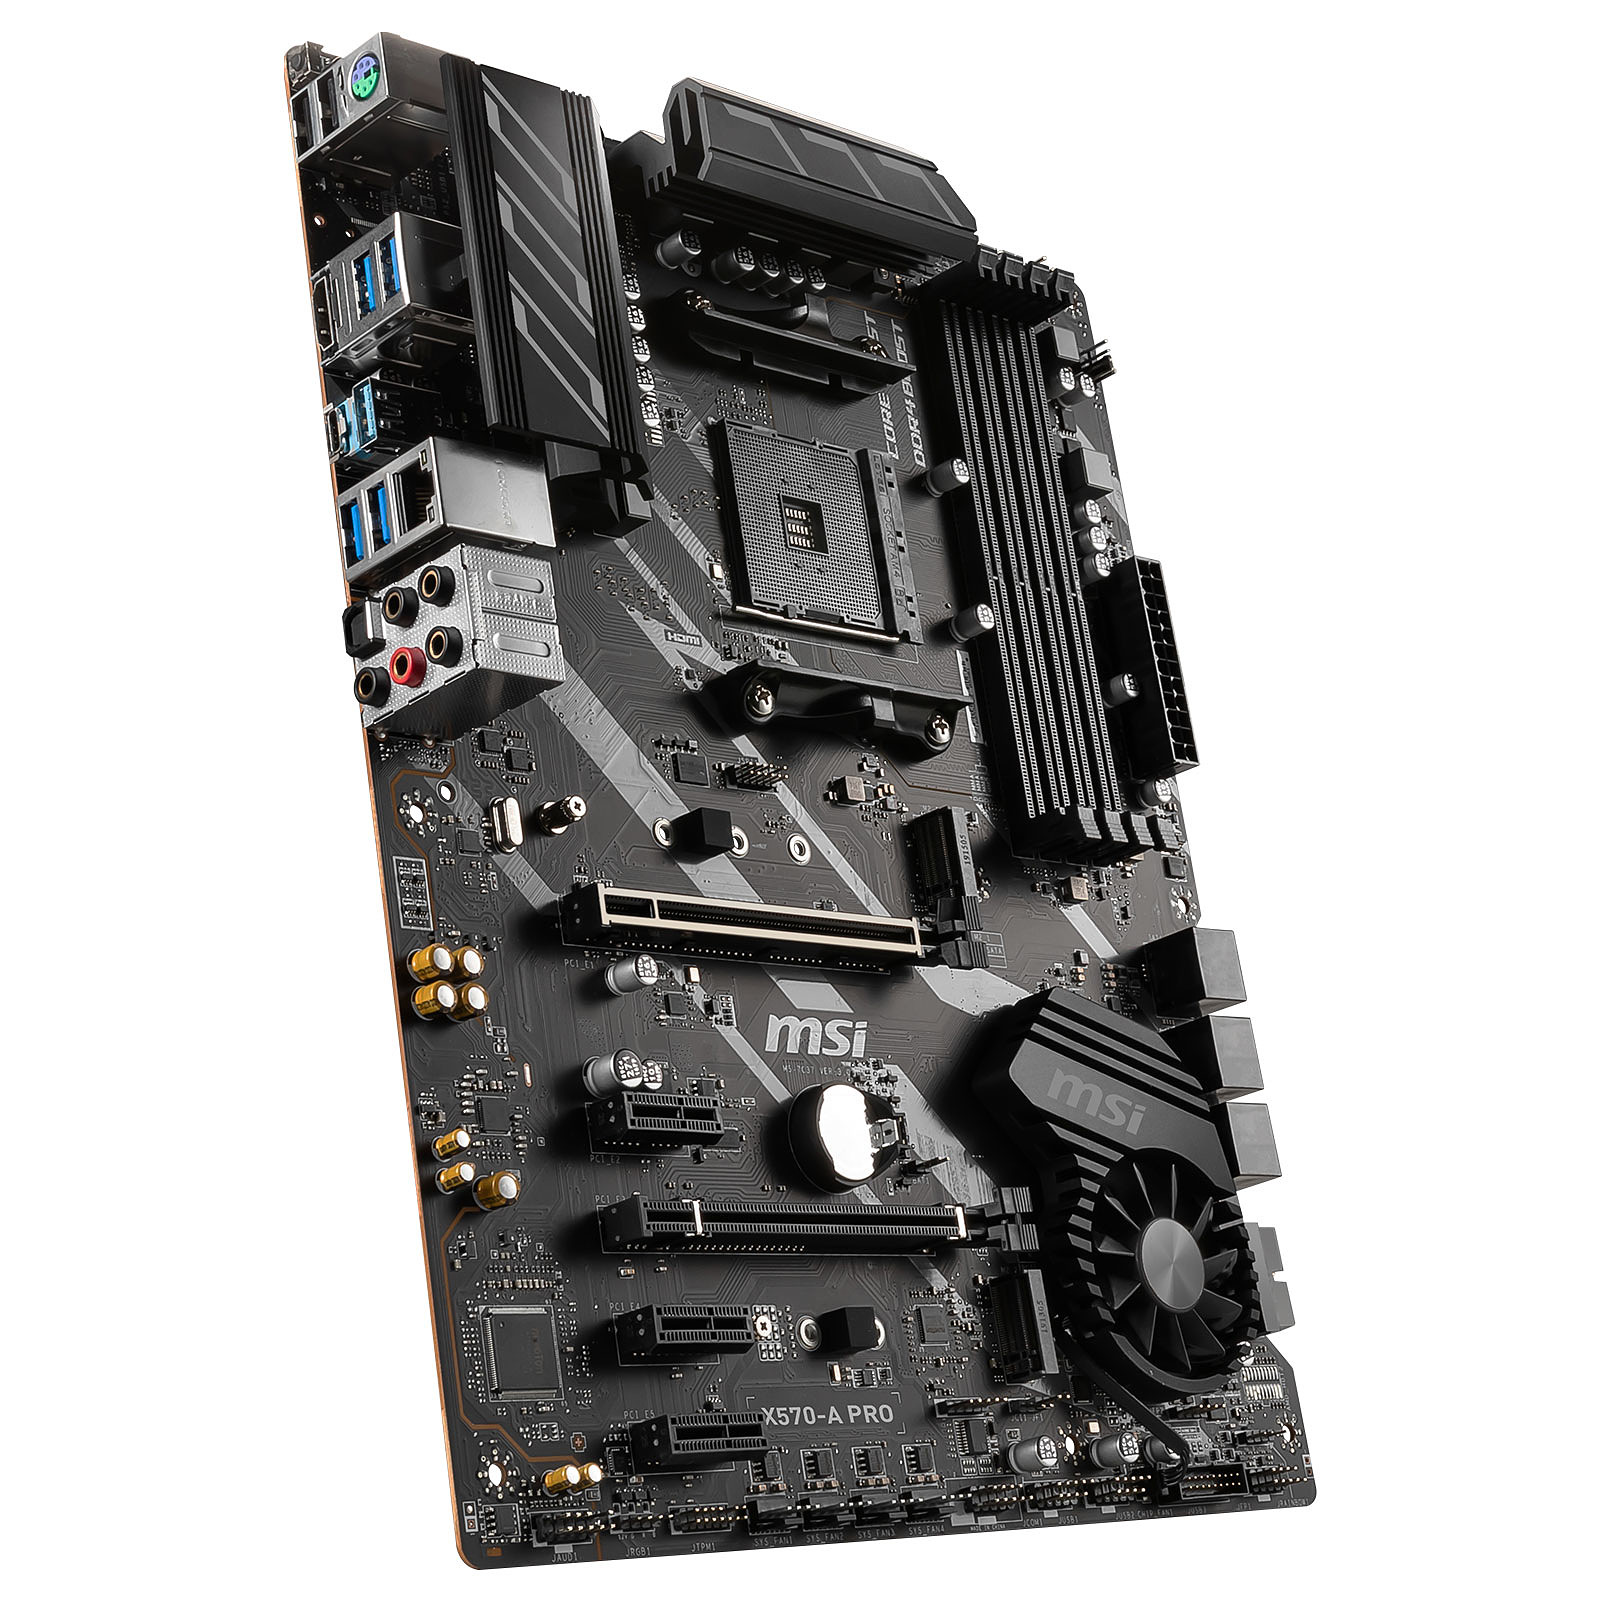 Carte mère MSI X570-A PRO Socket AM4 (AMD X570) ATX, informatique ile de la Réunion 974